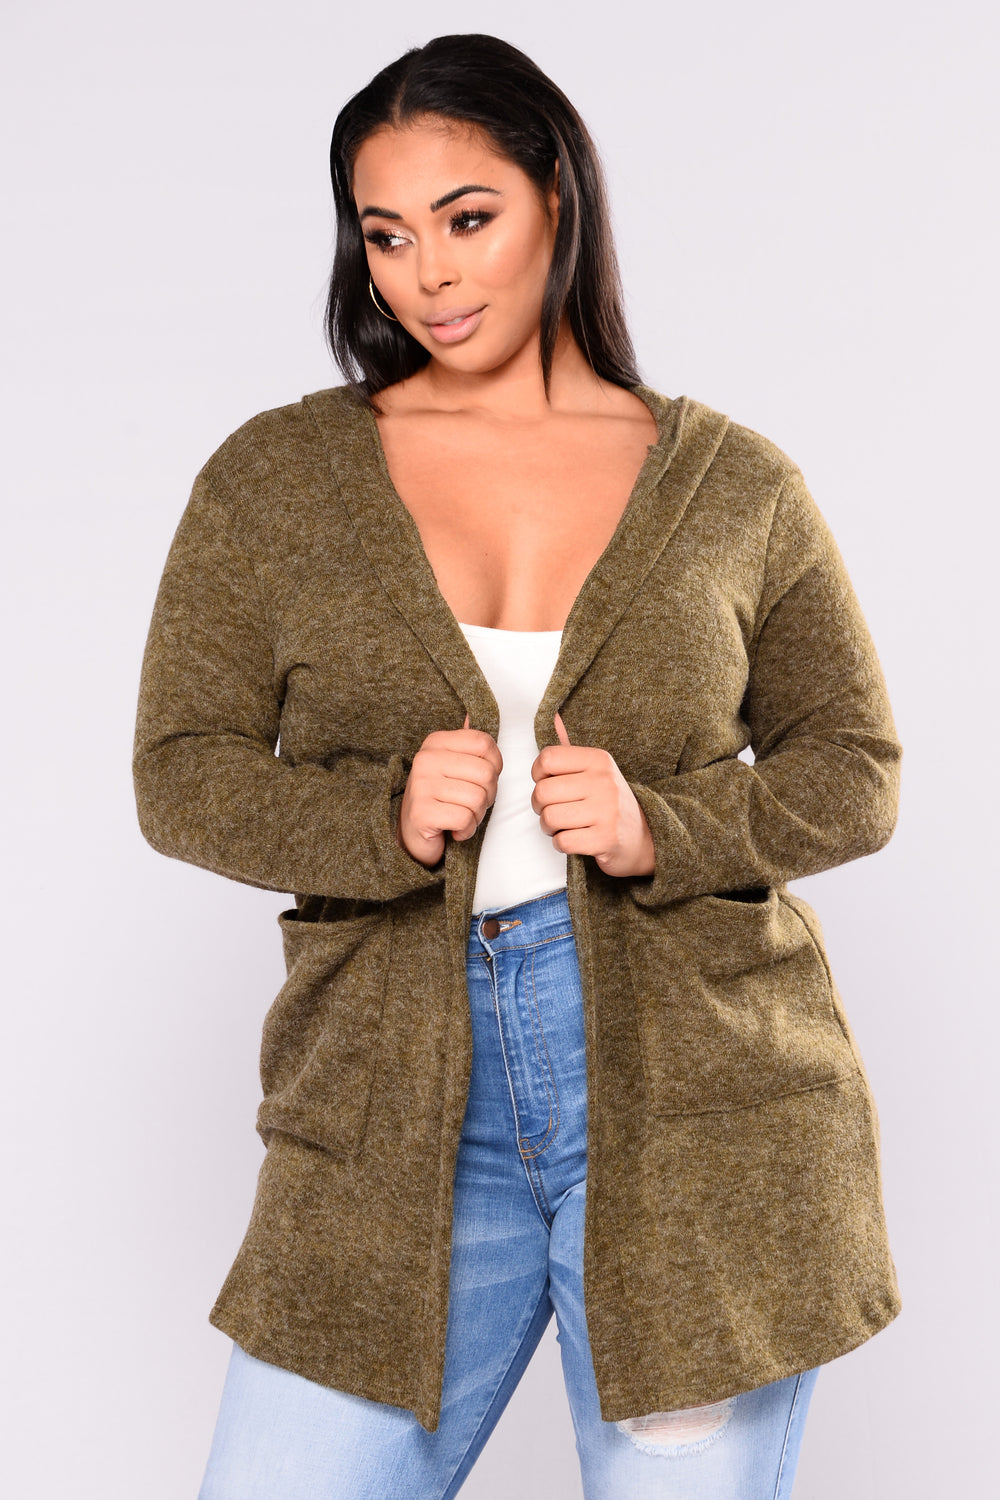 Easy Play Cardigan - Olive